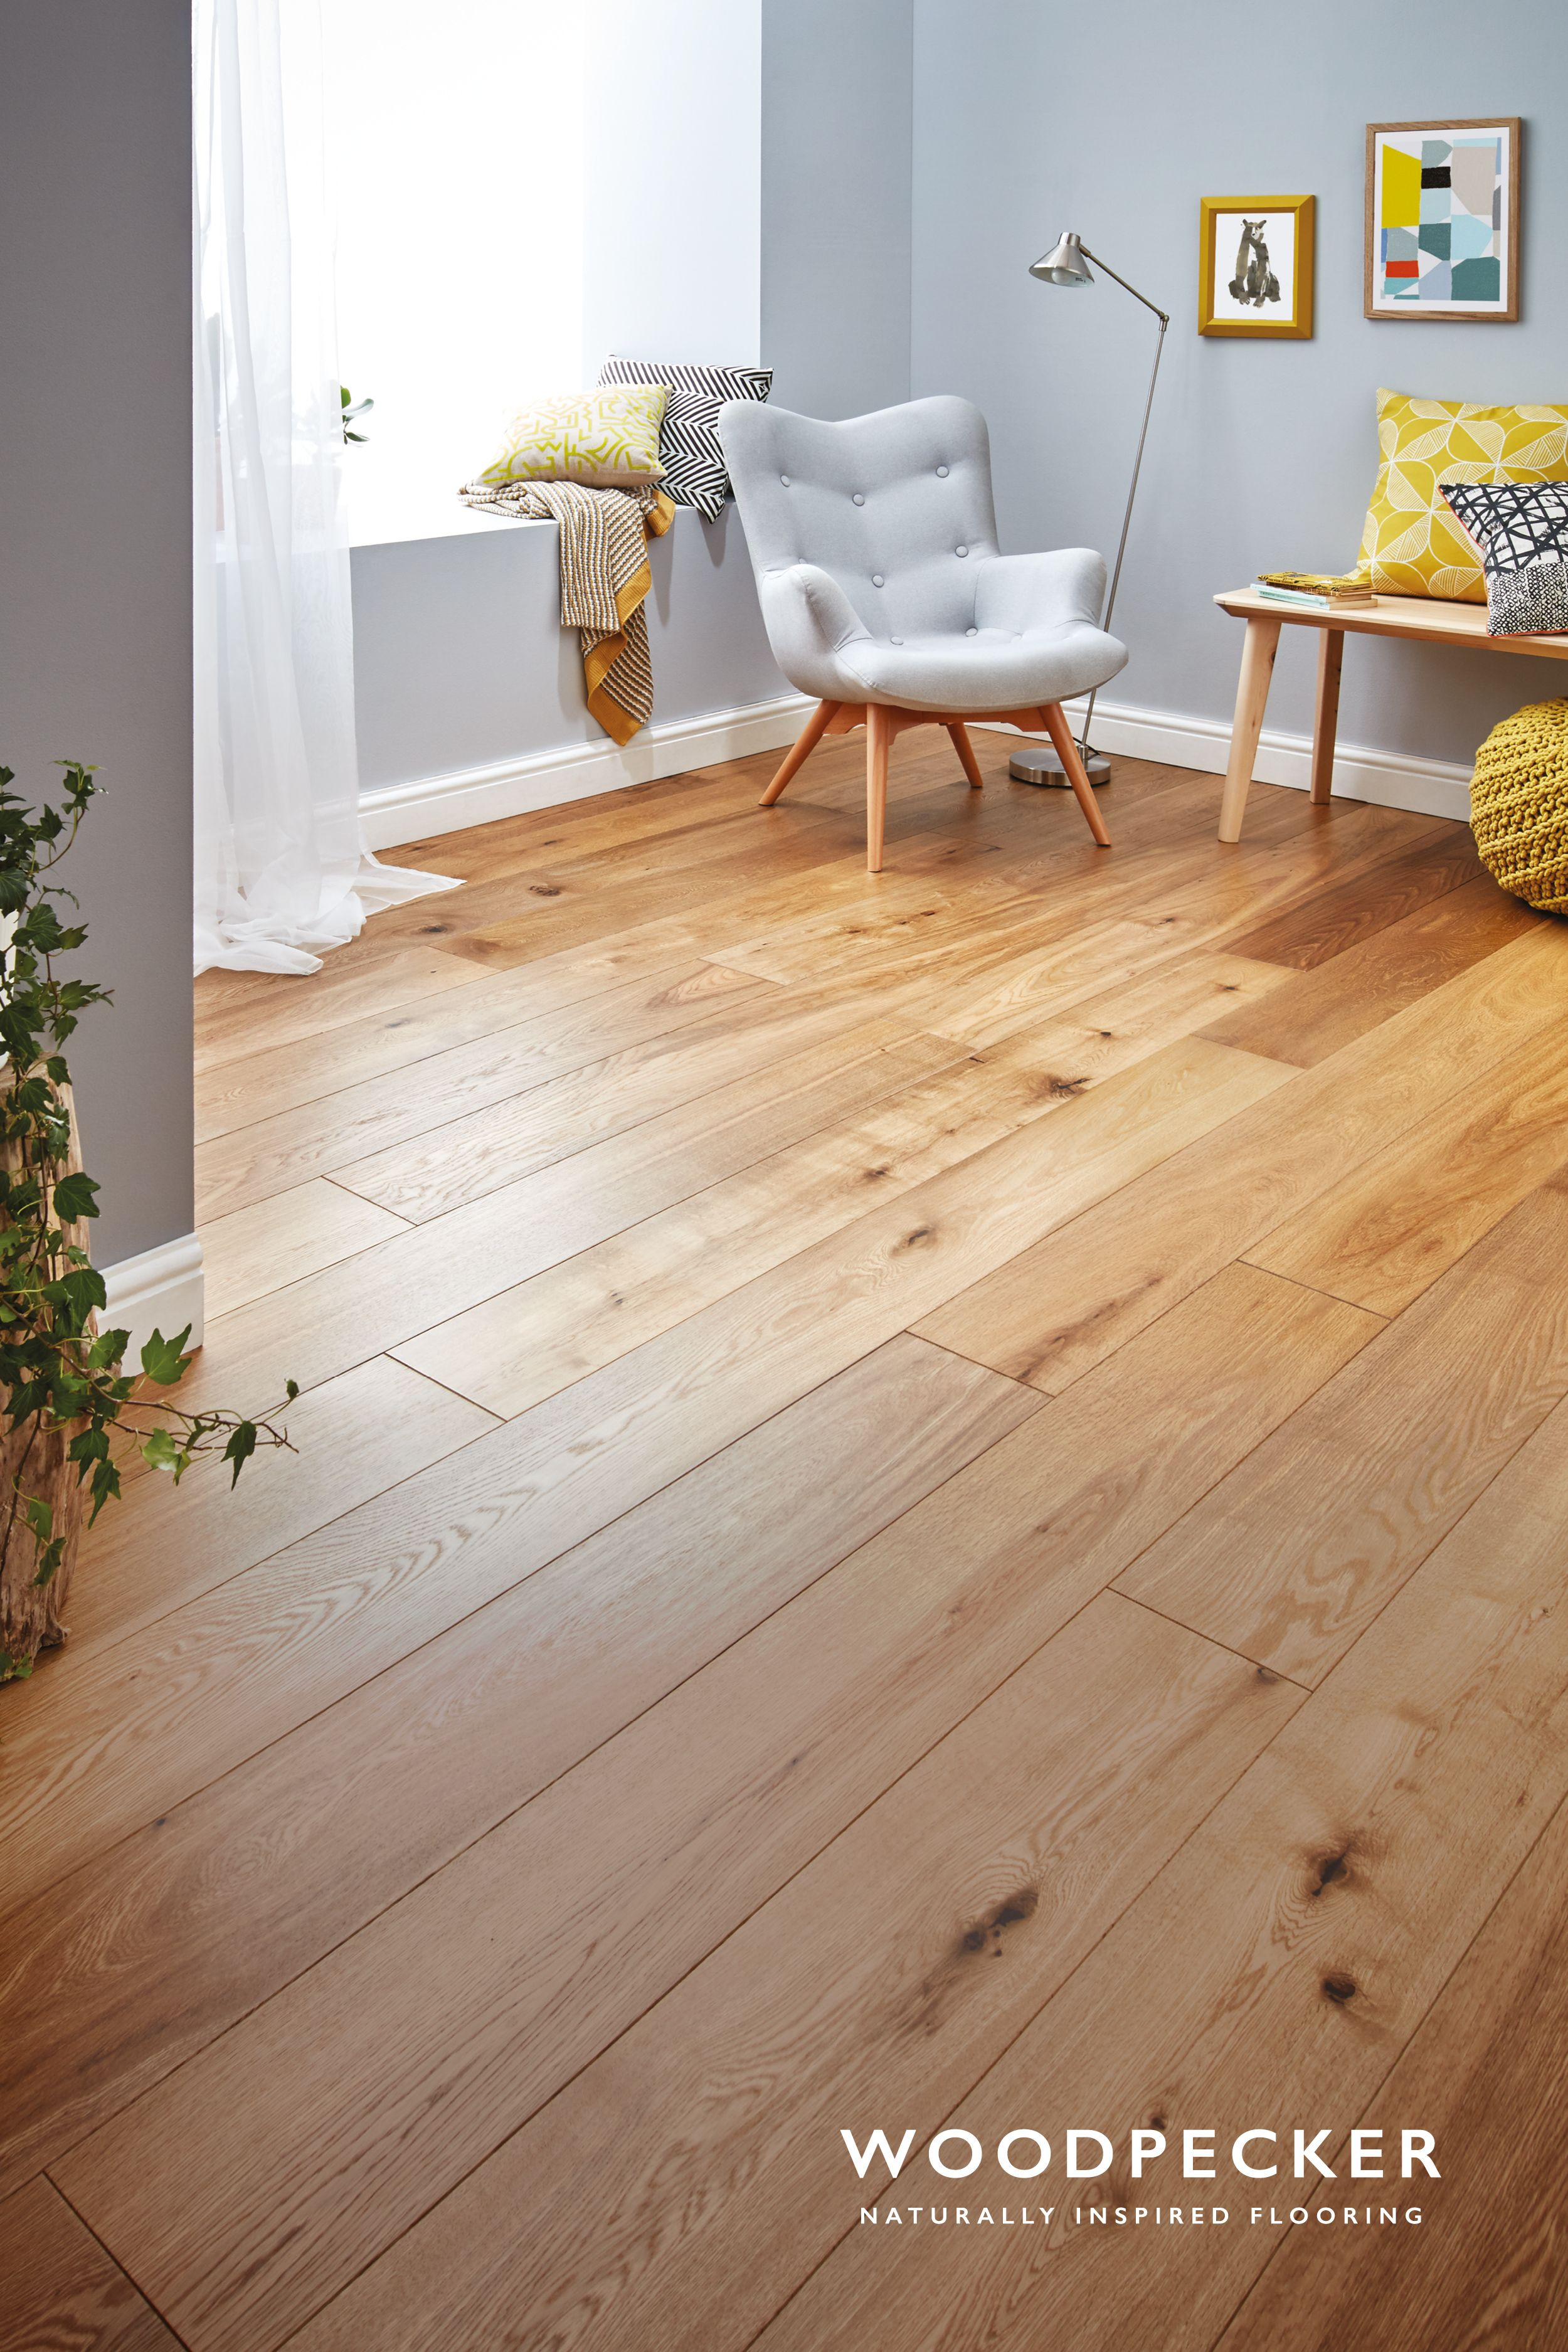 Harlech smoked oak home decor that i love flooring - Living room ideas with oak flooring ...